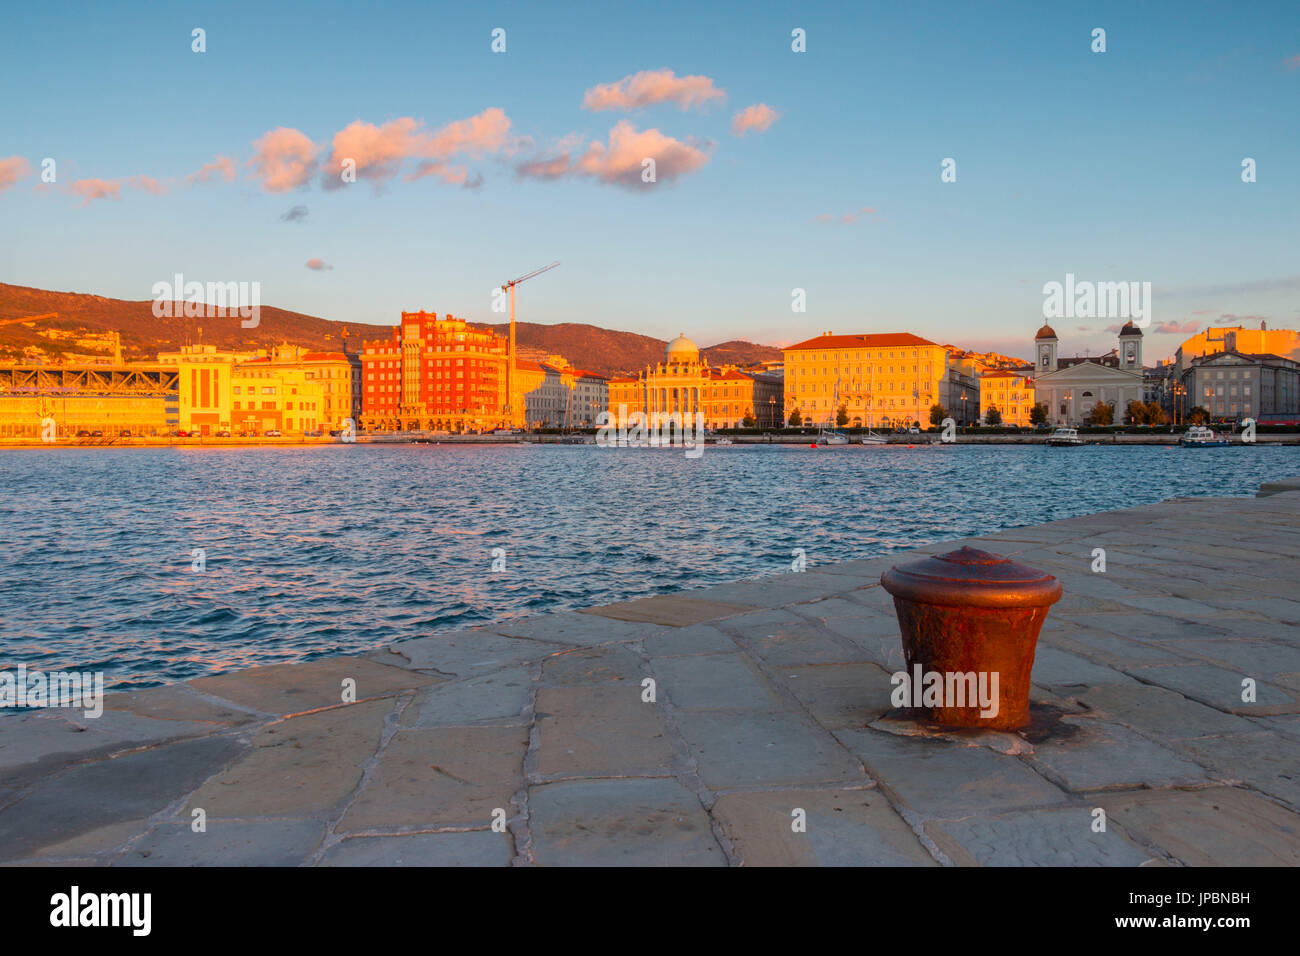 The neoclassic structures seen from Audace molo in Trieste at sunset. Trieste city, Trieste Province, Friuli Venezia Giulia district, Italy, Europe - Stock Image